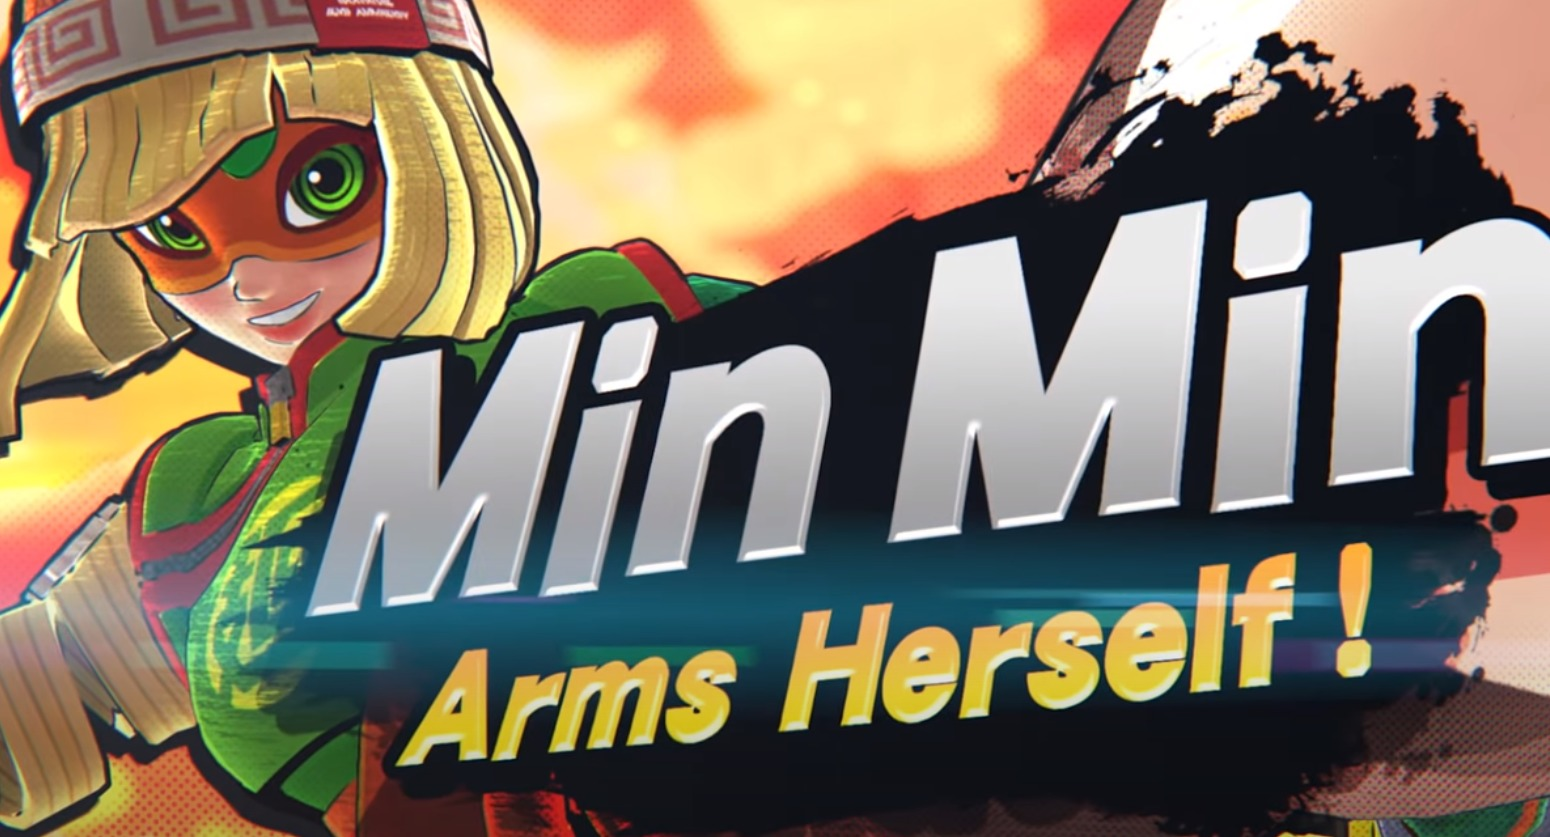 Min Min From ARMS Has Been Released As The Next Fighters Pass Character In Super Smash Bros. Ultimate